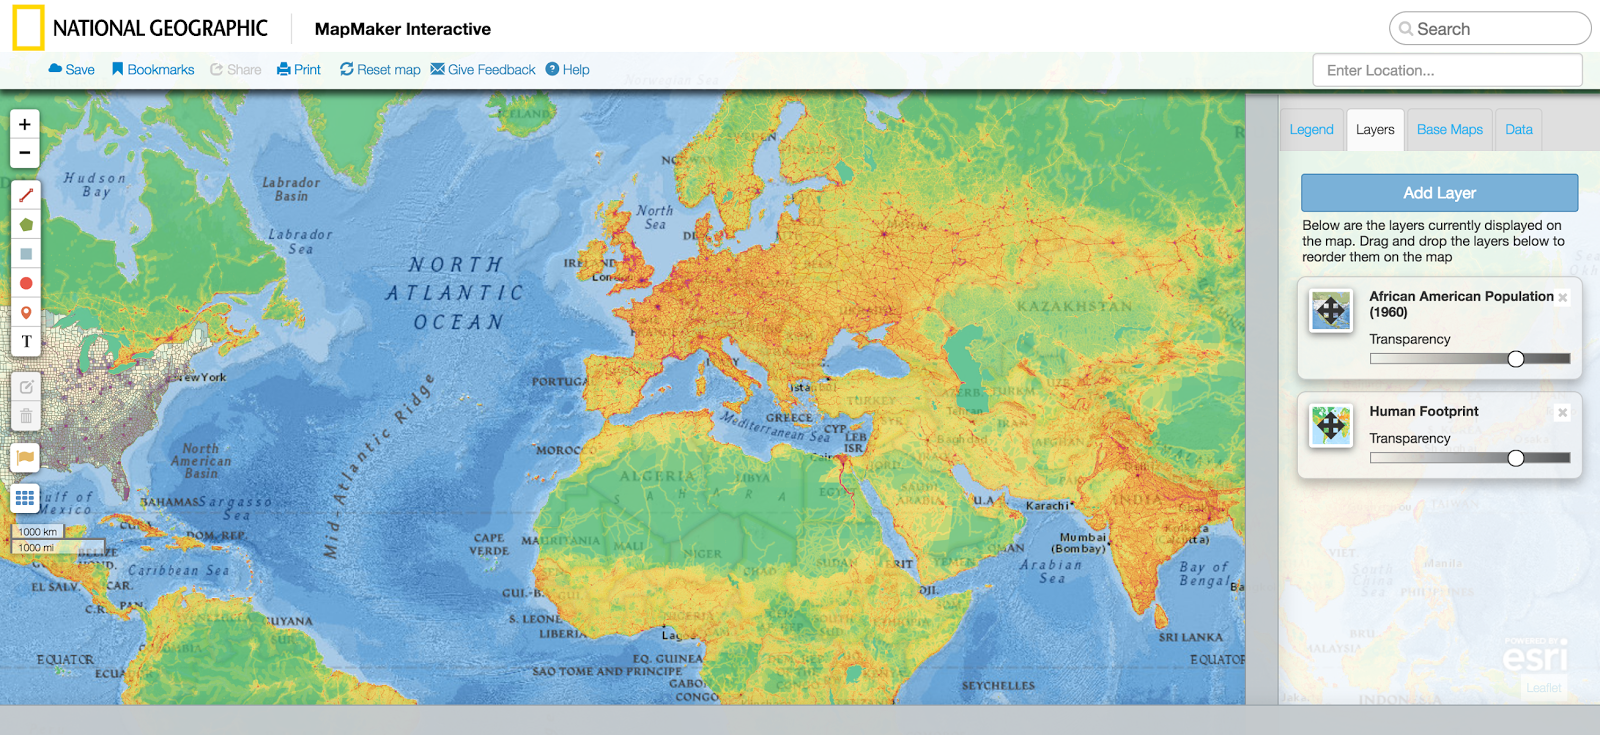 National Geographic S Map Maker Is A Wonderful Tool To Use With Many Features Zoom In And Out On Maps Create Layers Add Drawings Insert Video Links And